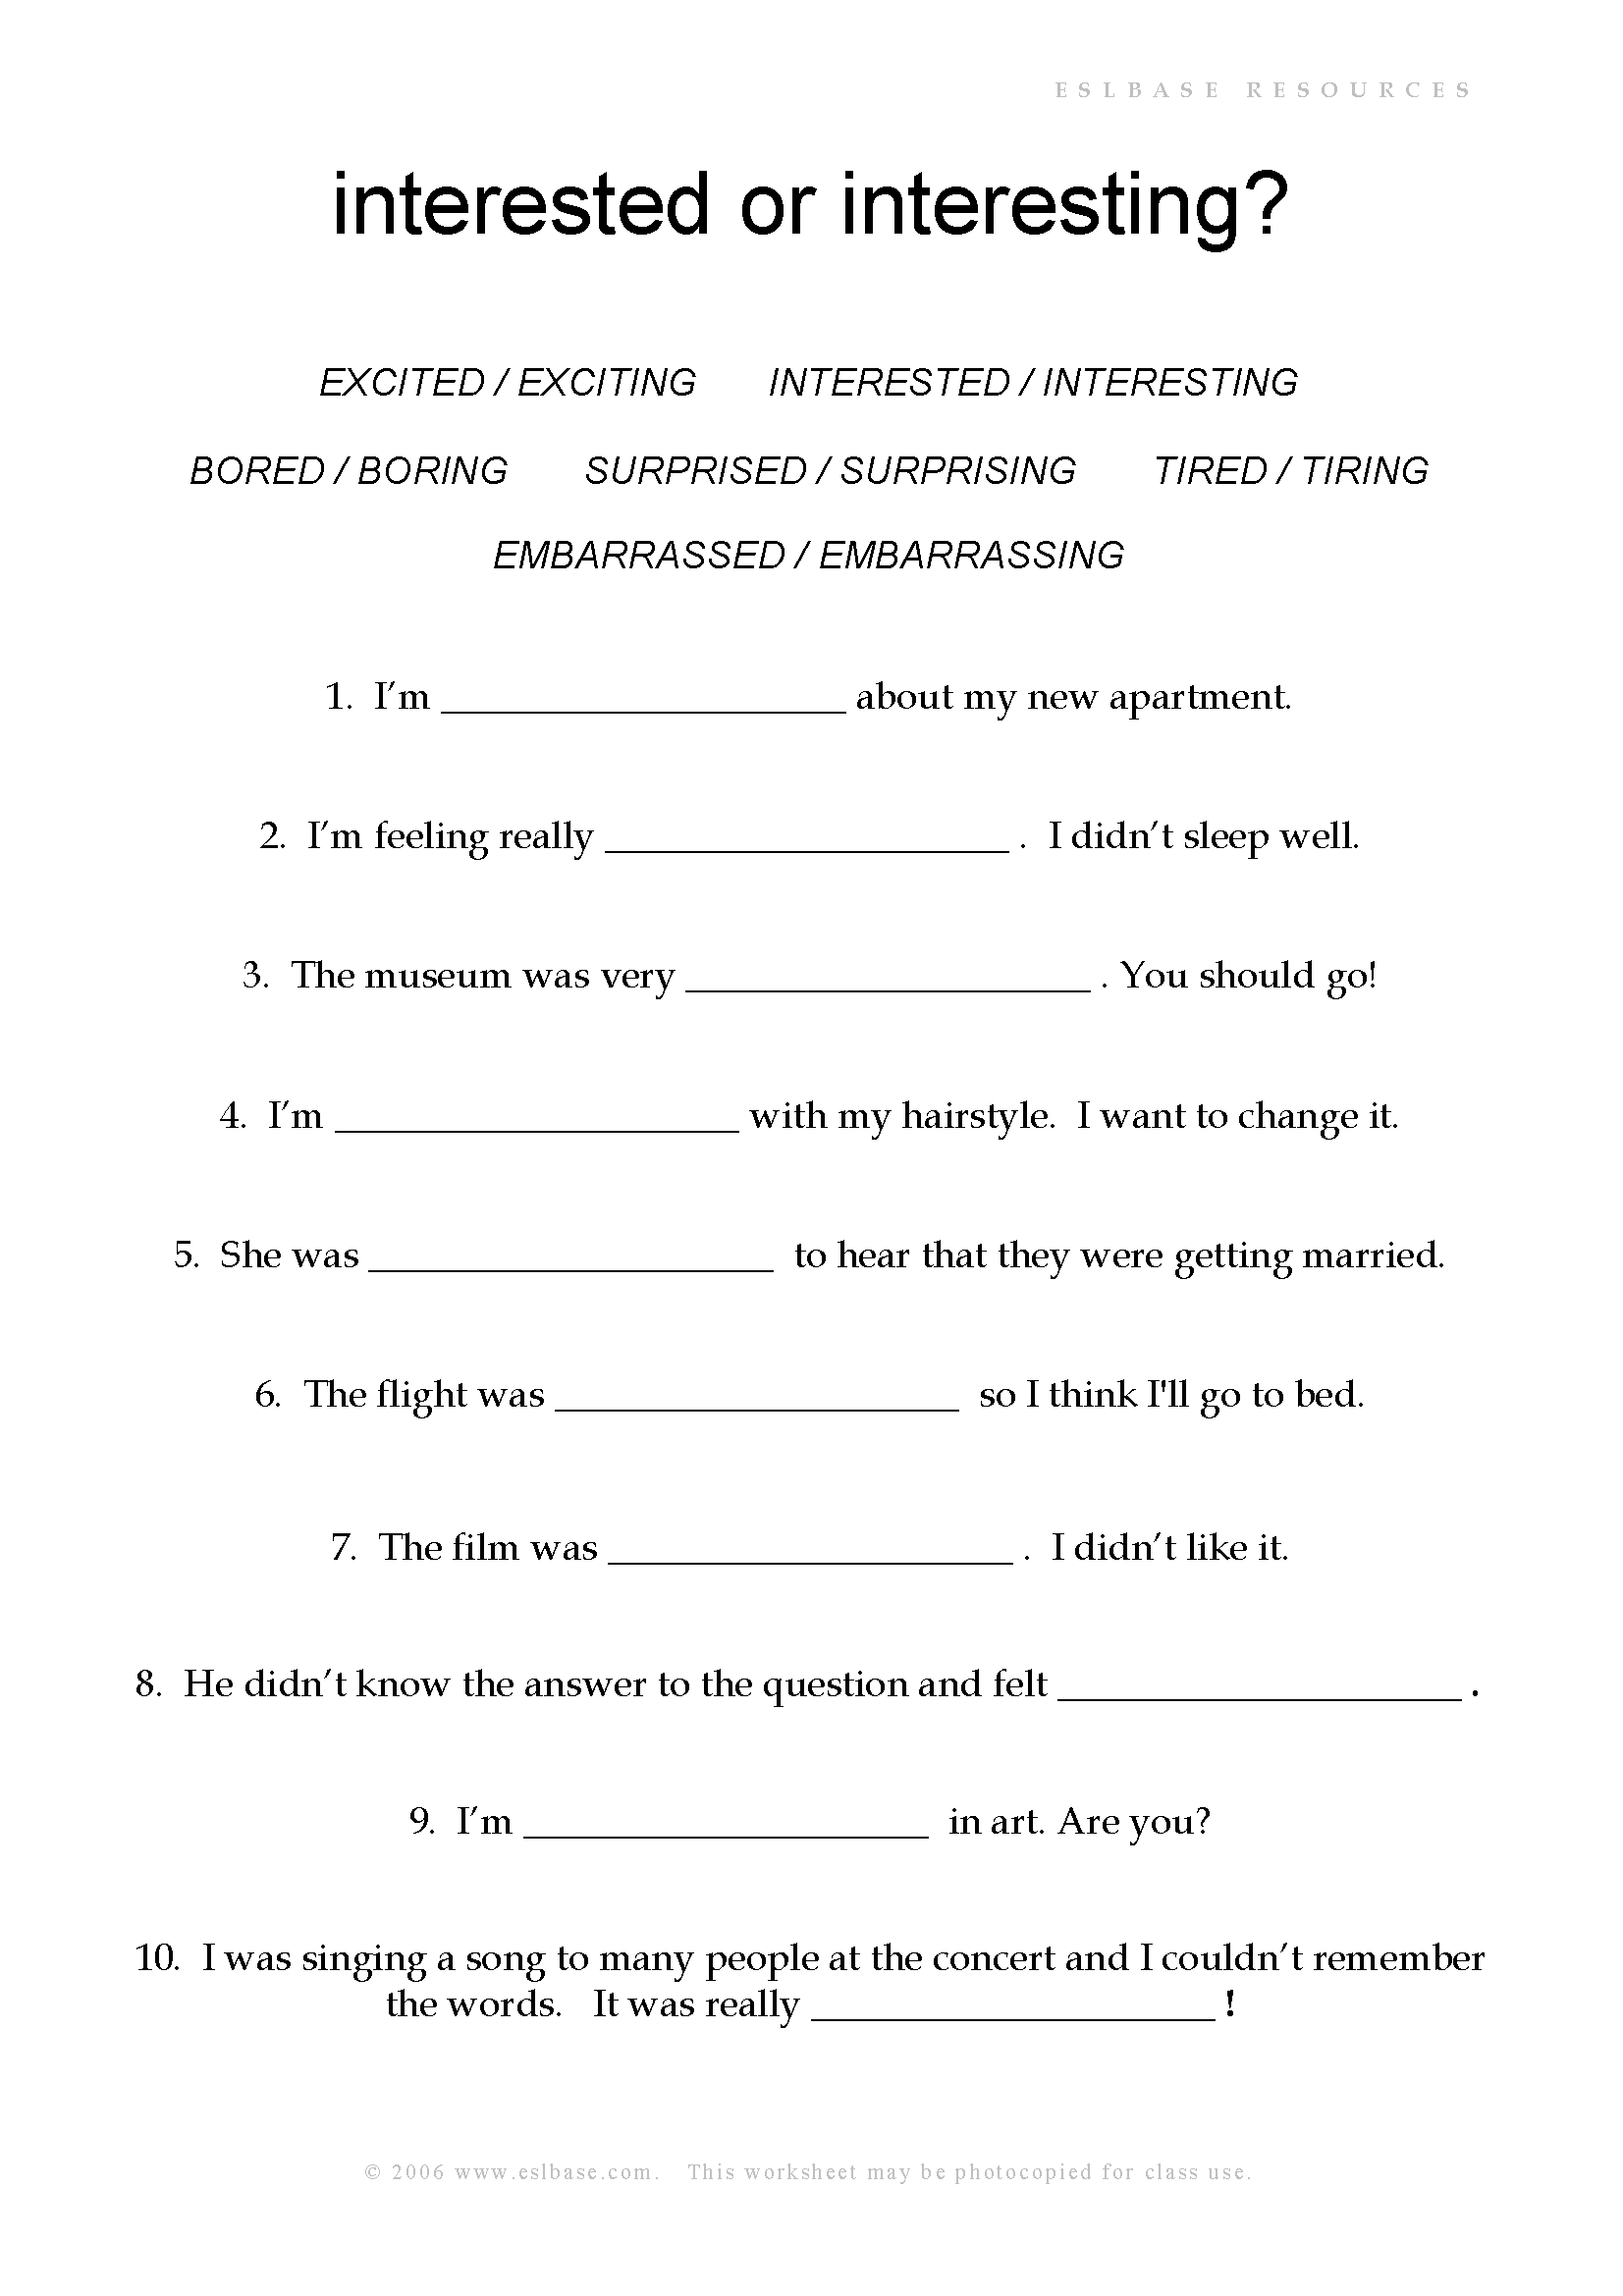 Adjective Endings Ed Or Ing